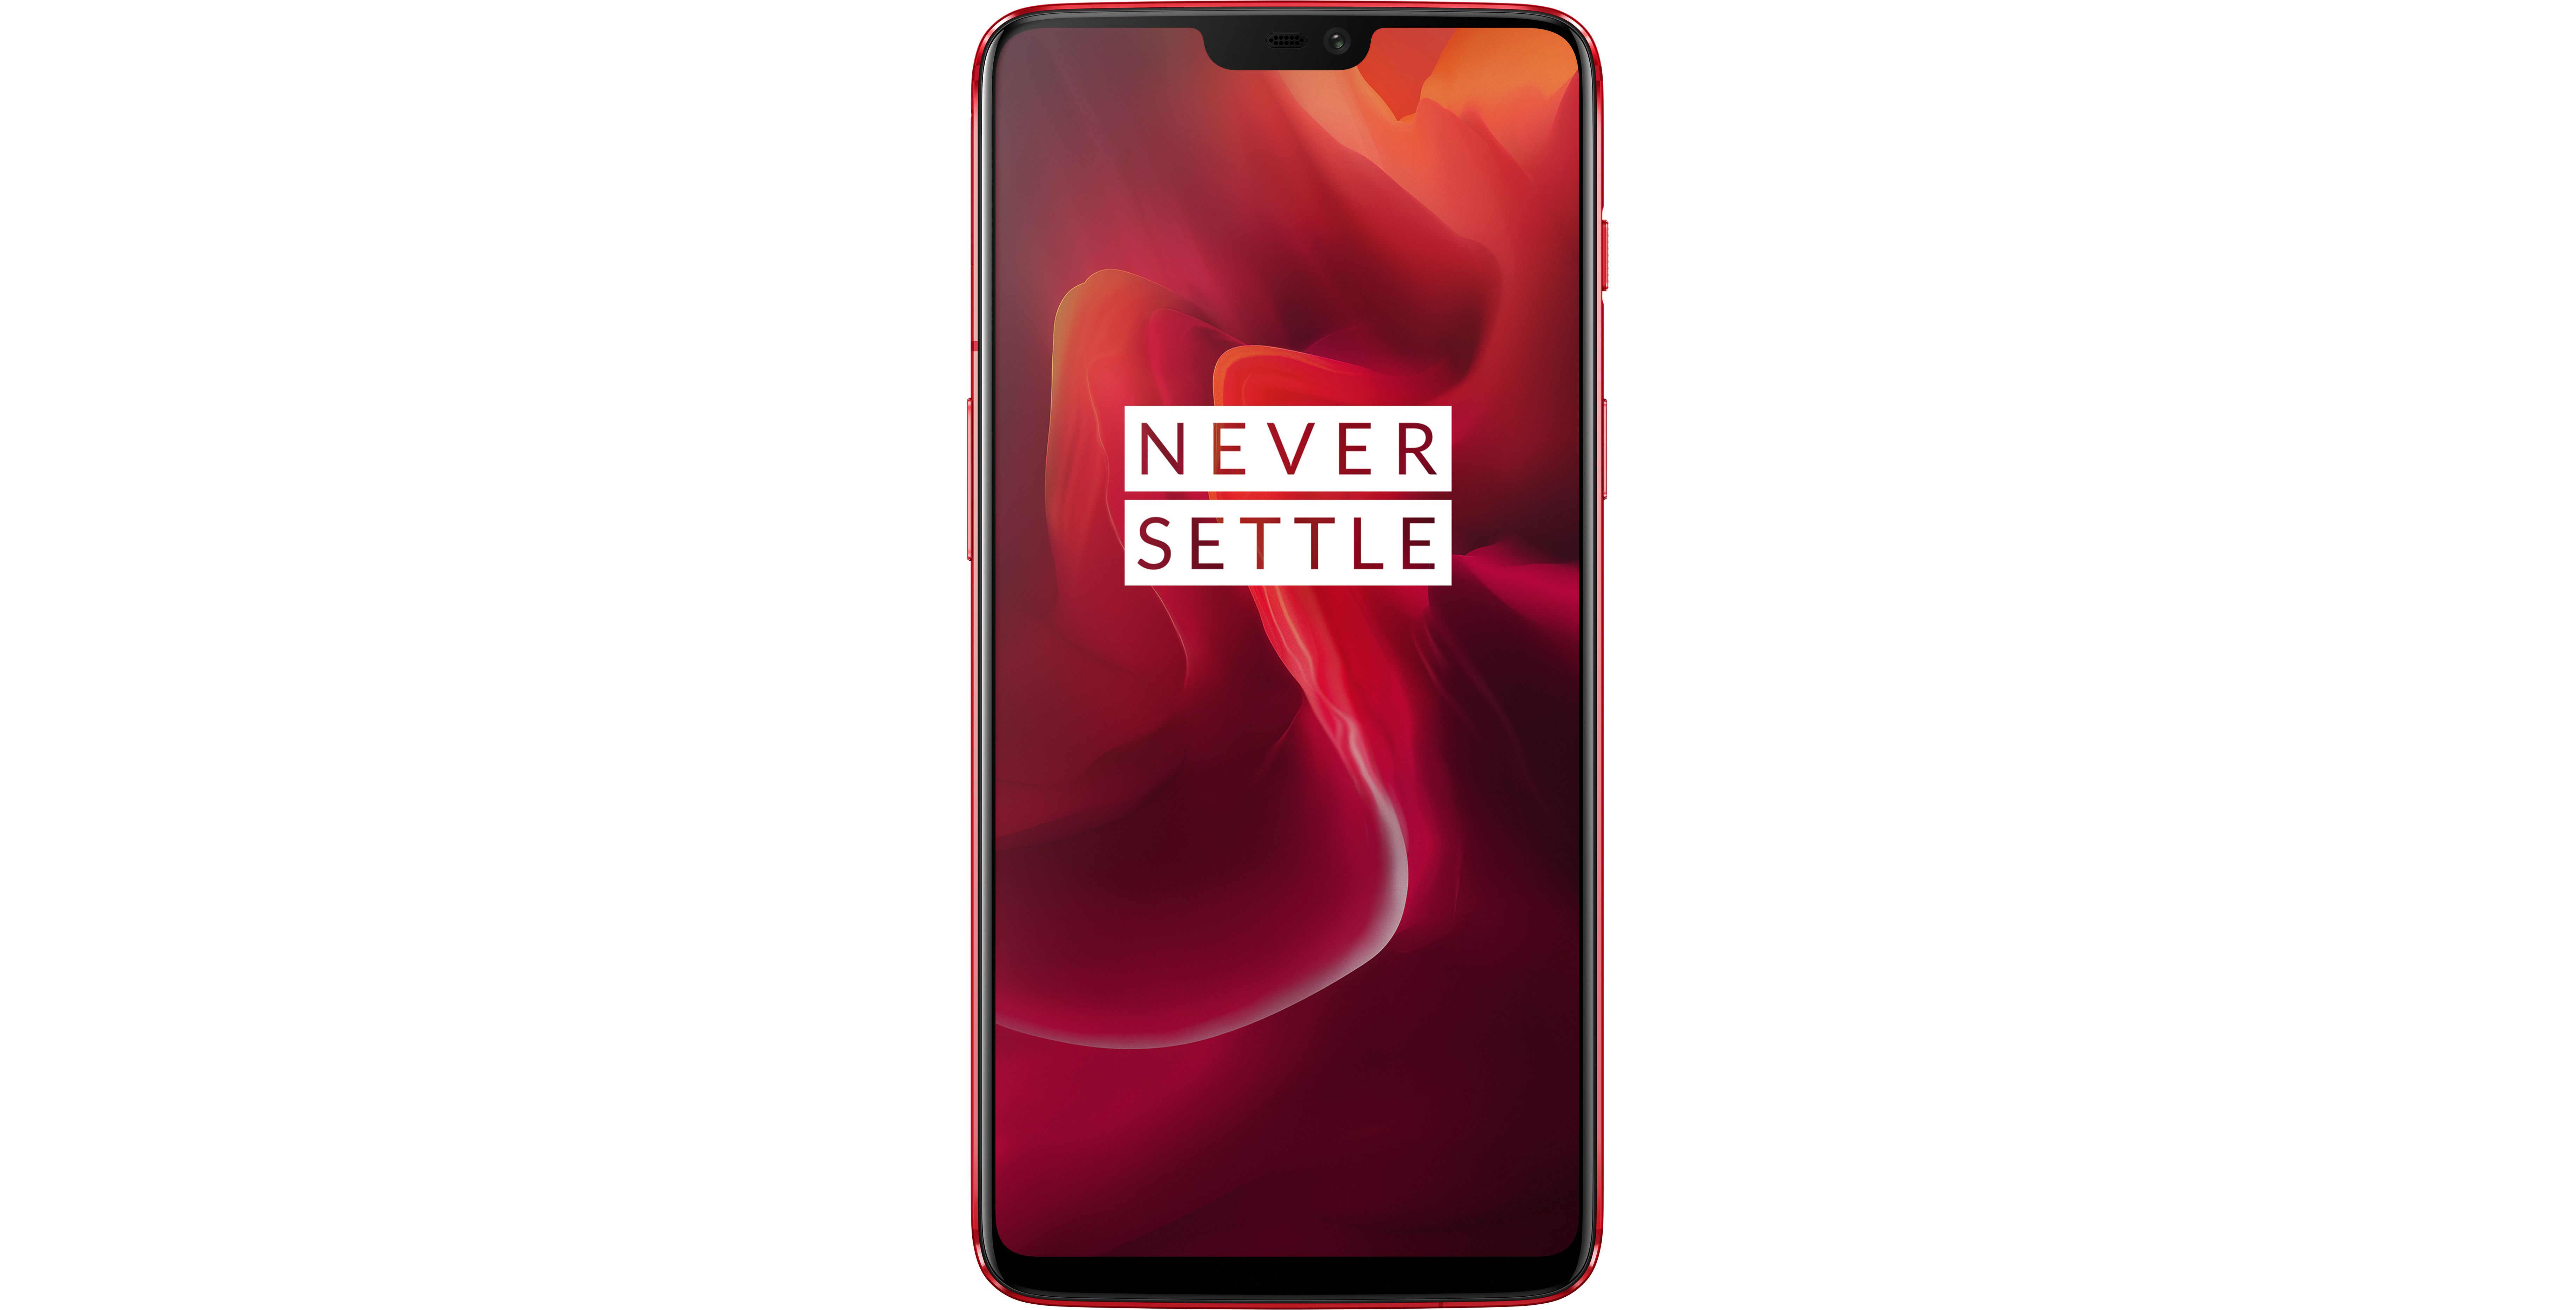 OnePlus 6T smartphone in red